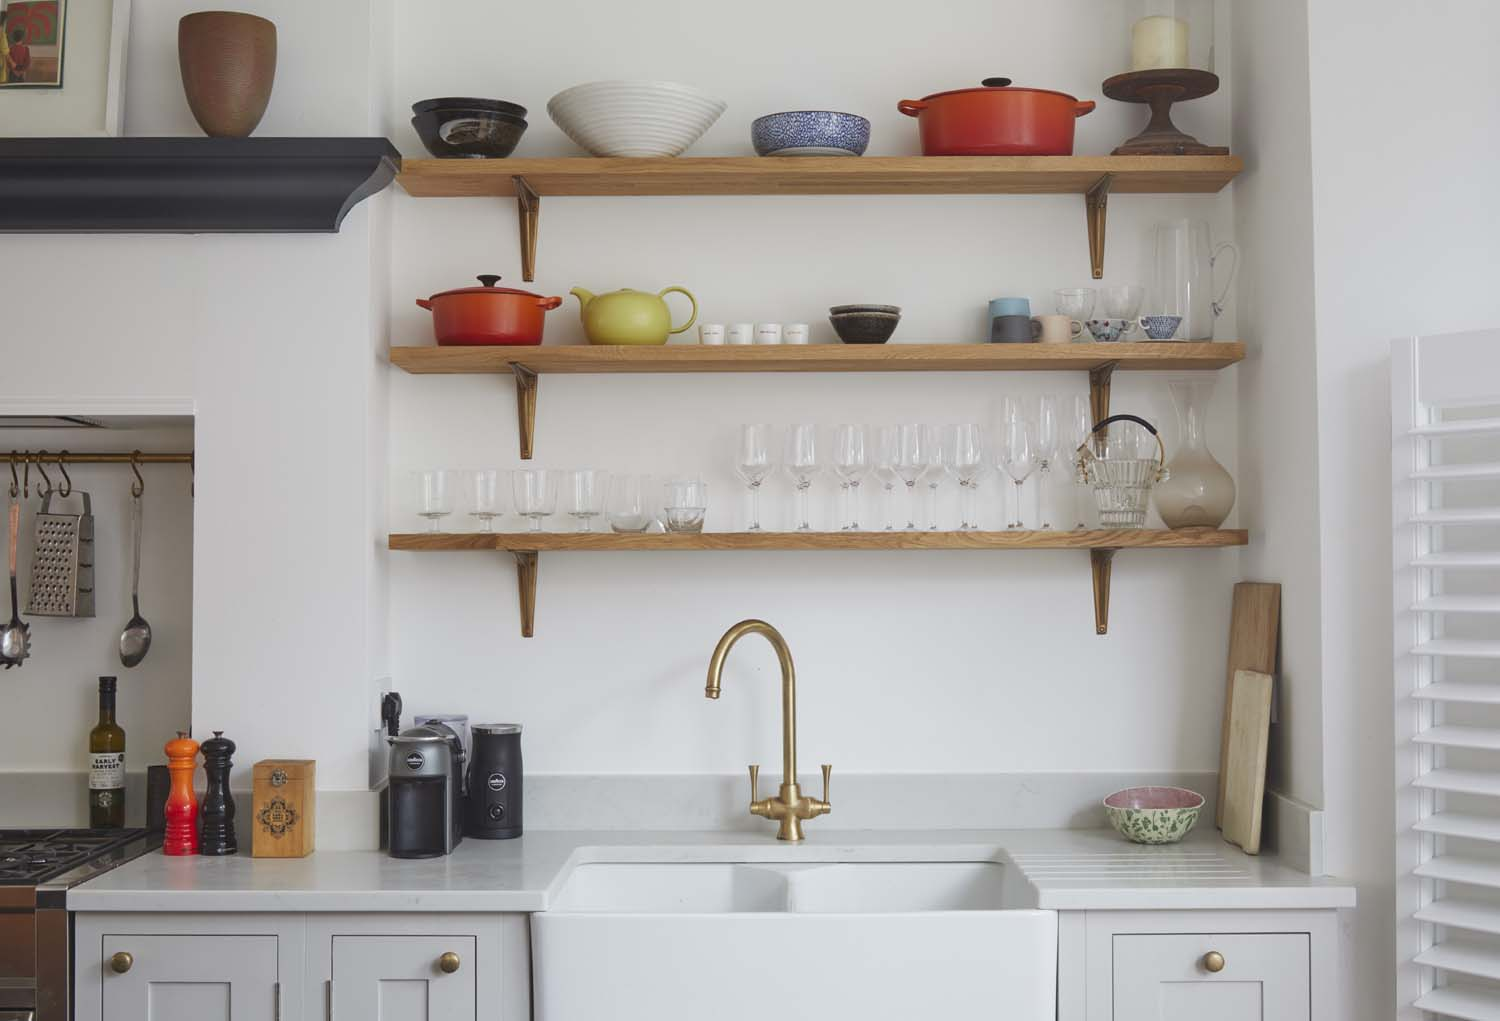 Light grey shaker kitchen with wooden shelving and large sink.